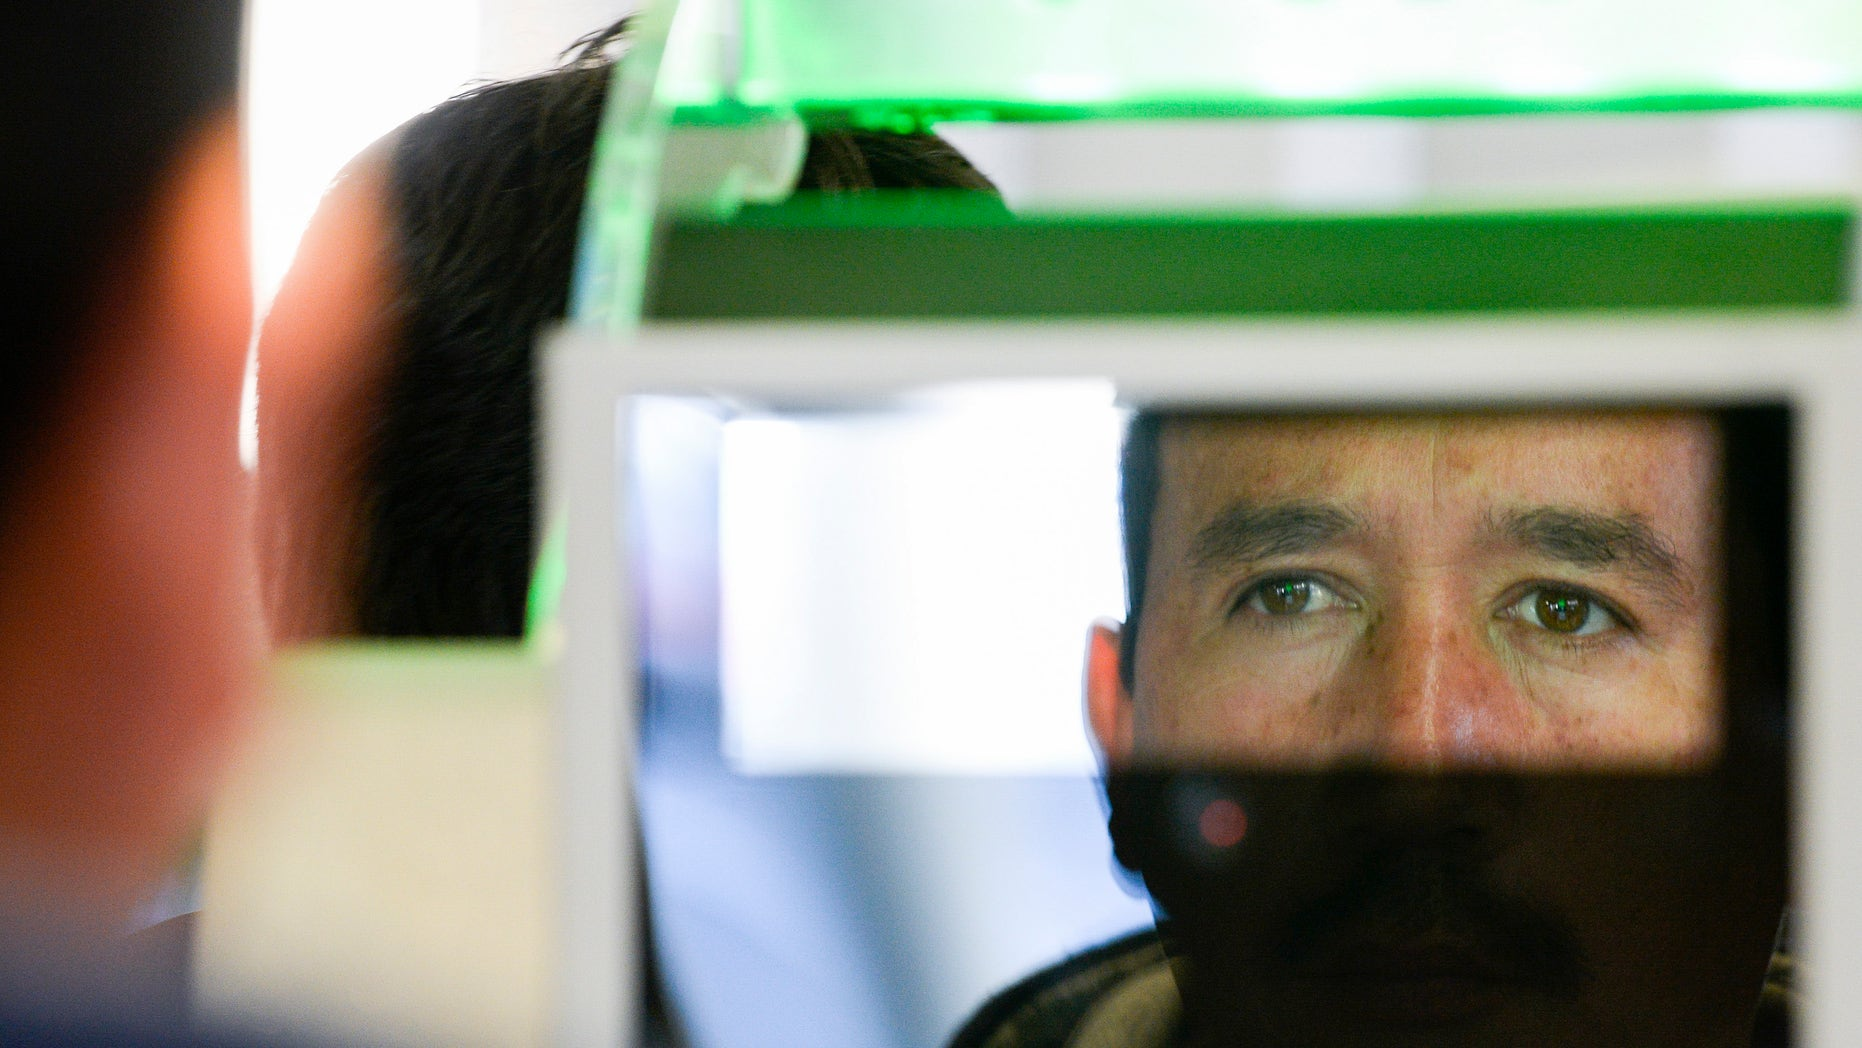 A pedestrian crossing from Mexico into the United States at the Otay Mesa Port of Entry has his facial features and eyes scanned at a biometric kiosk Thursday, Dec. 10, 2015, in San Diego.  On Thursday, U.S. Customs and Border Protection began capturing facial and eye scans of foreigners entering the country at San Diego's Otay Mesa port of entry on foot.  (AP Photo/Denis Poroy)